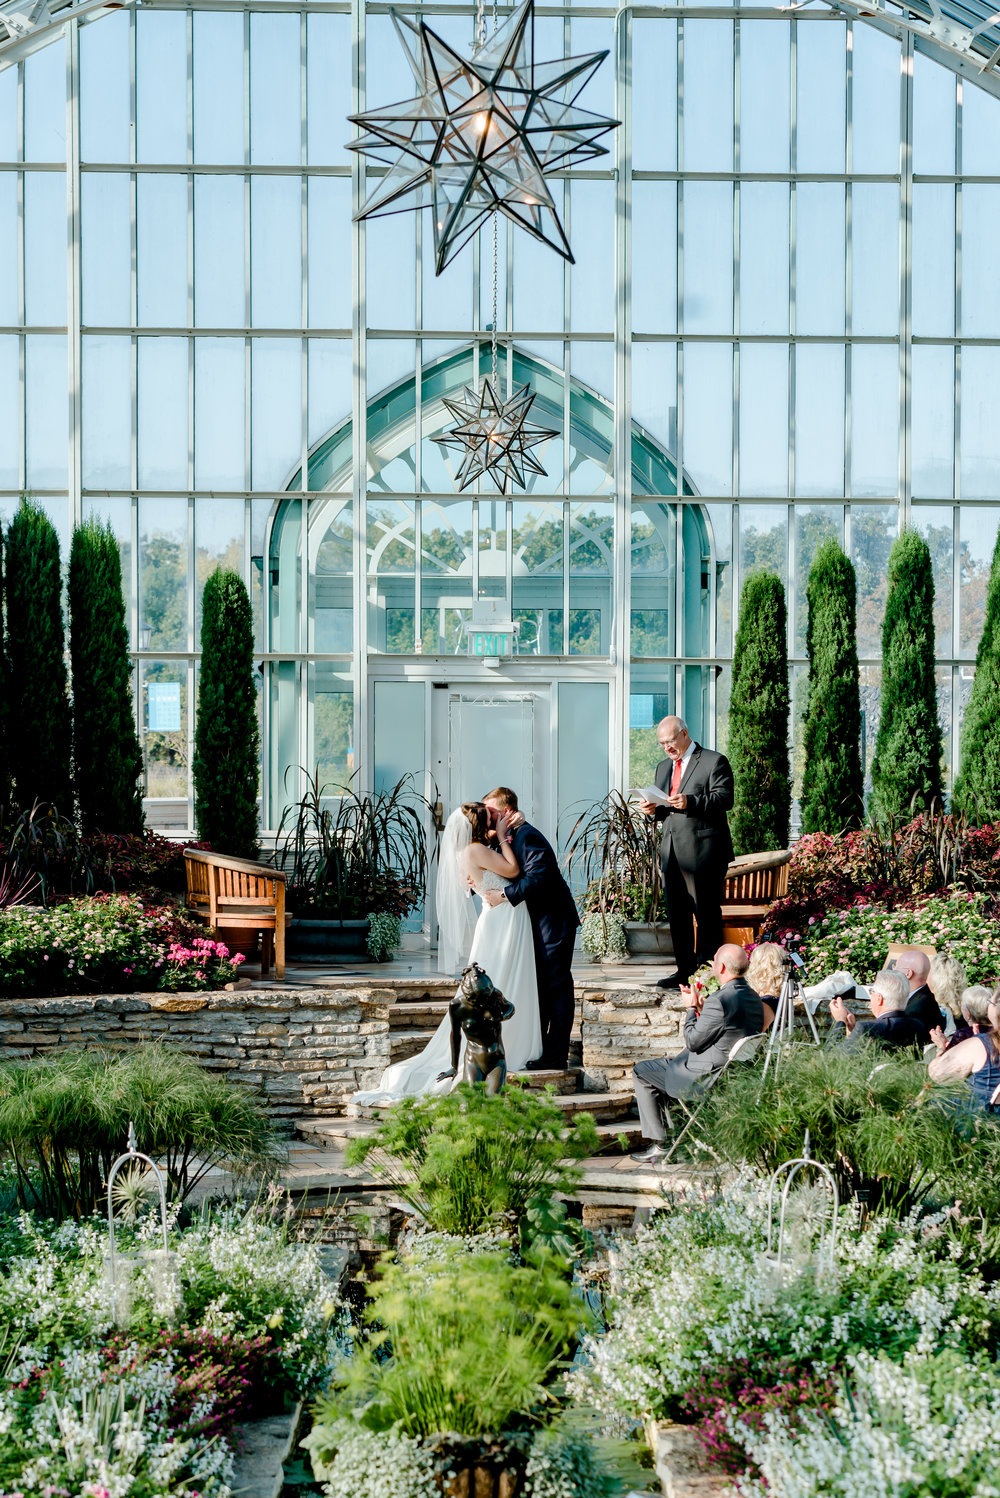 First Kiss at Morning Wedding Ceremony in Sunken Gardens at Como Conservatory Wedding - St Paul Intimate Wedding Elopement Photographer